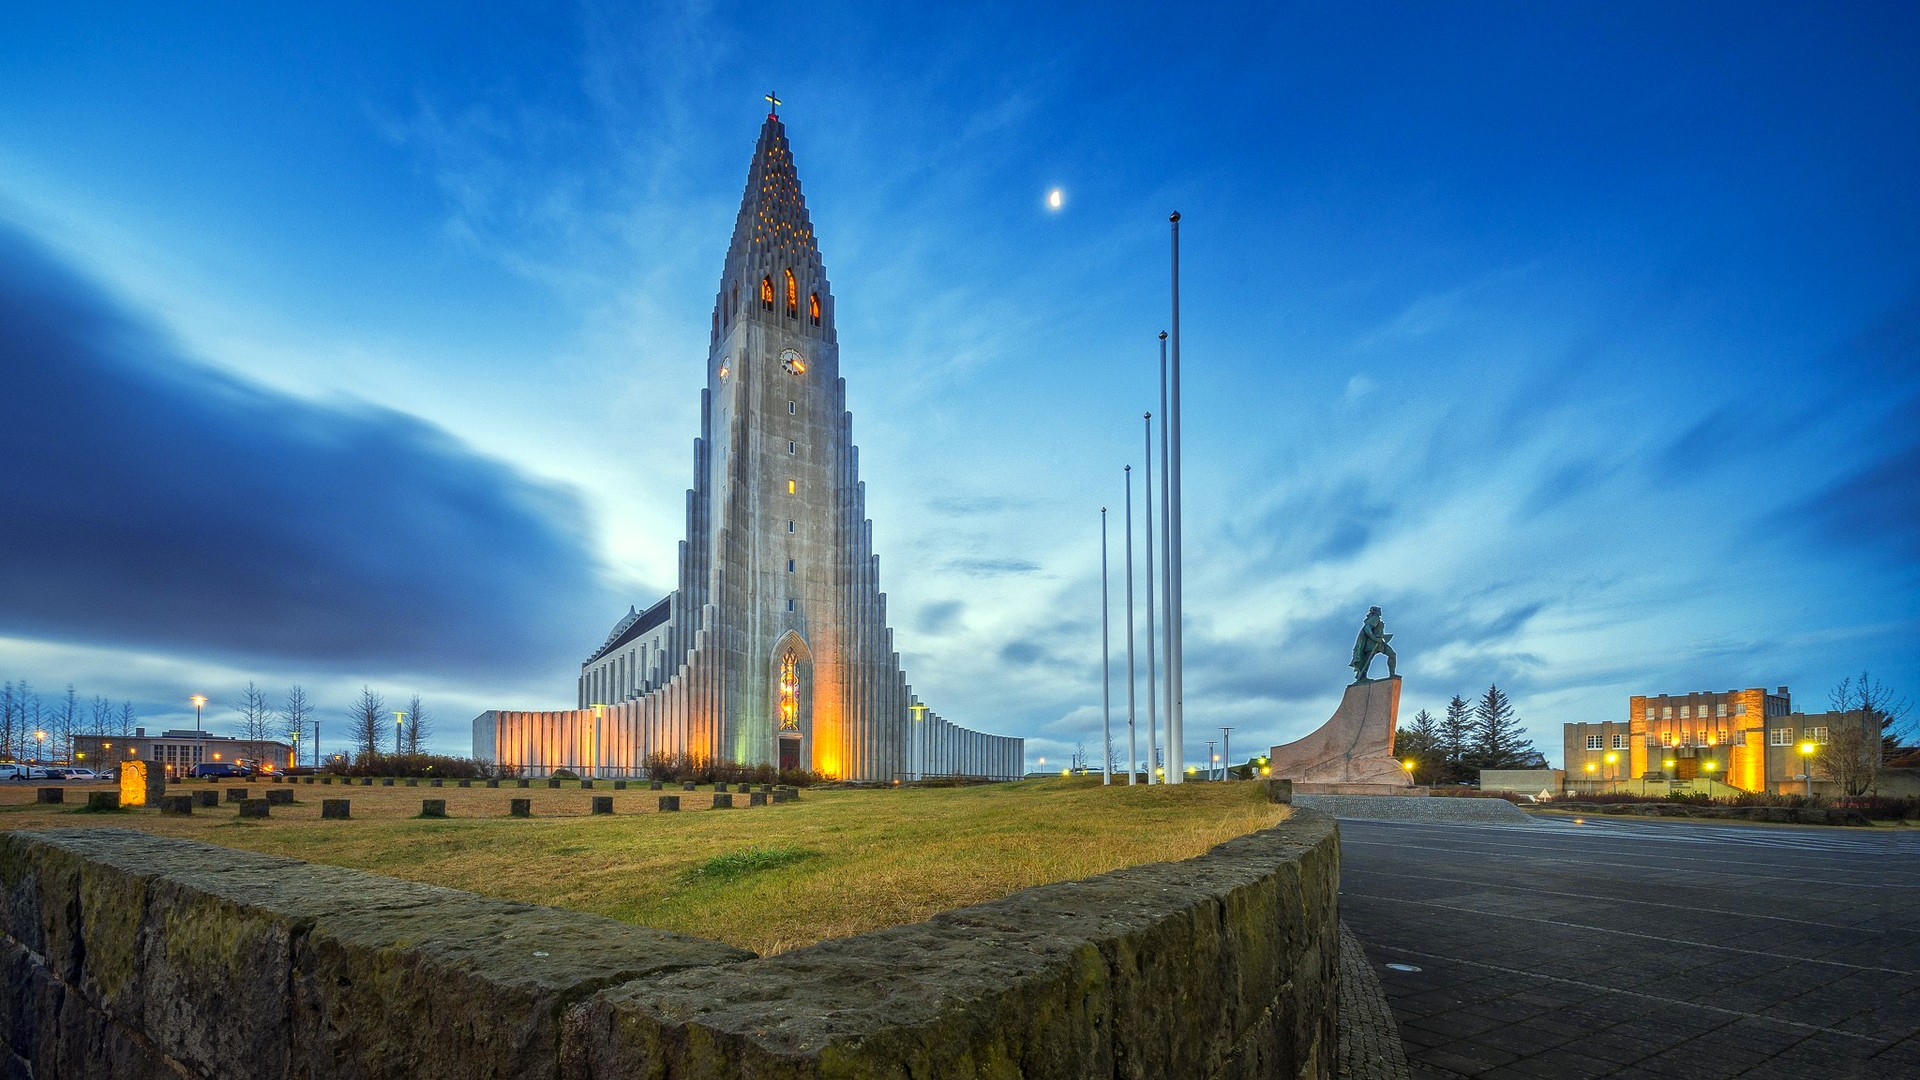 Full Hd 3d Wallpapers 1920x1080 Free Download For Mobile Architecture Building Reykjavik Iceland Church Modern